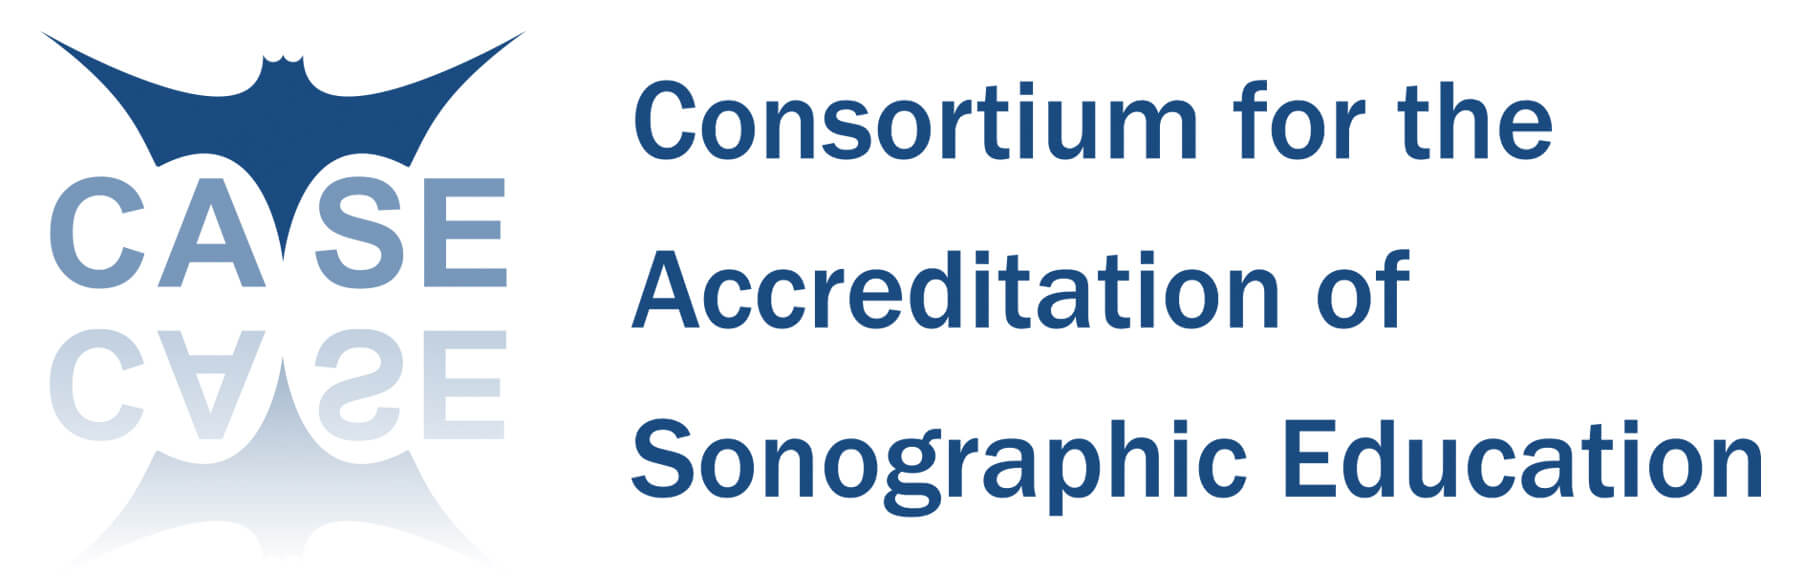 Consortium for the Accreditation of Sonographic Education logo